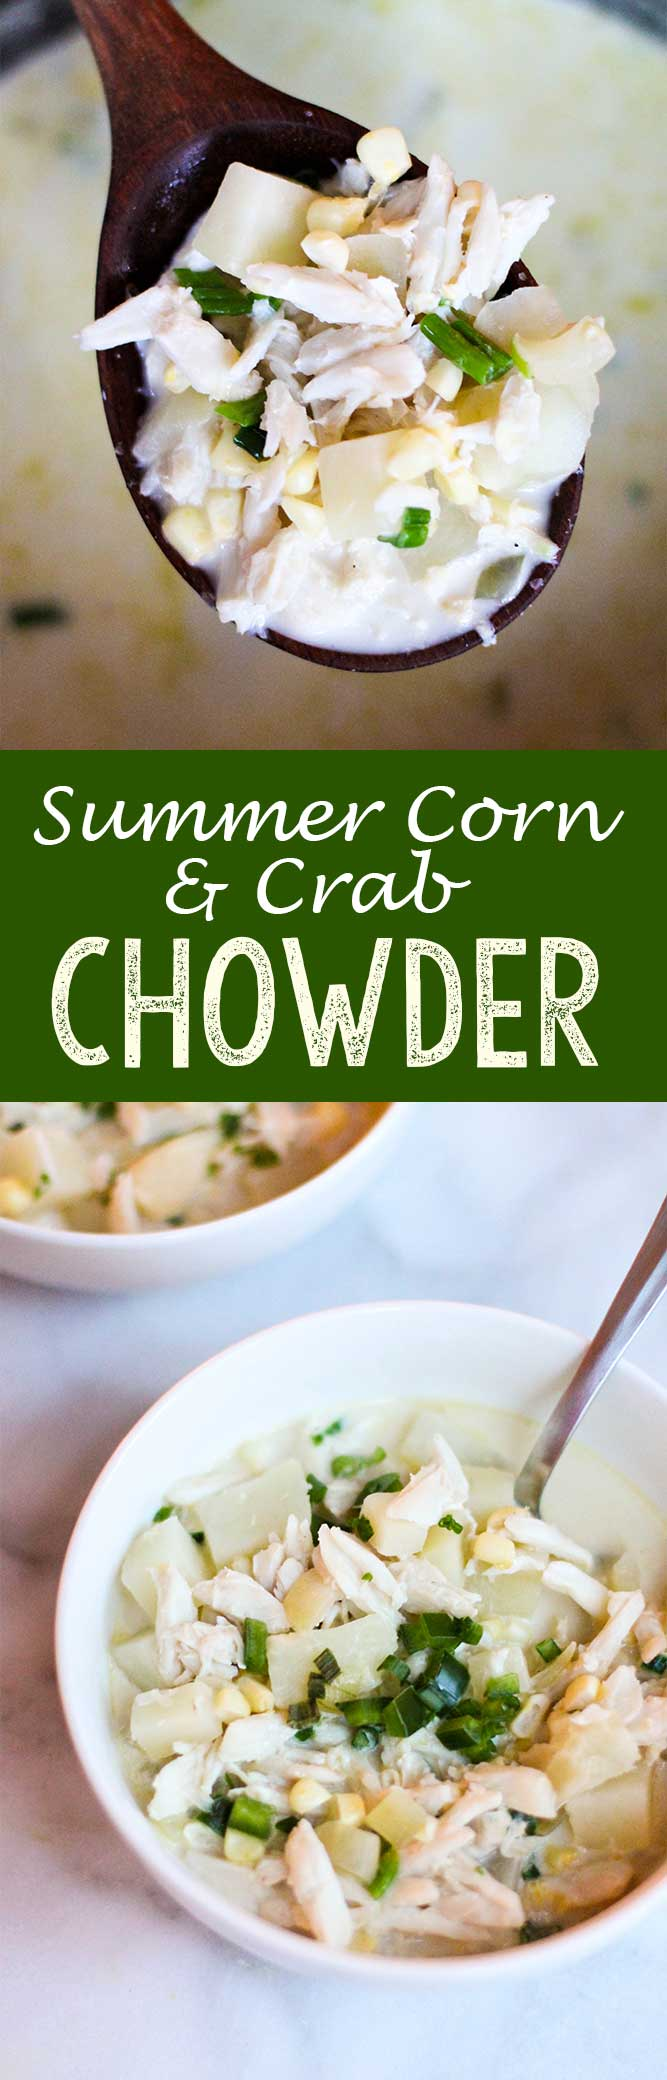 Summer corn and crab chowder is the perfect summer soup for a nice evening eating alfresco